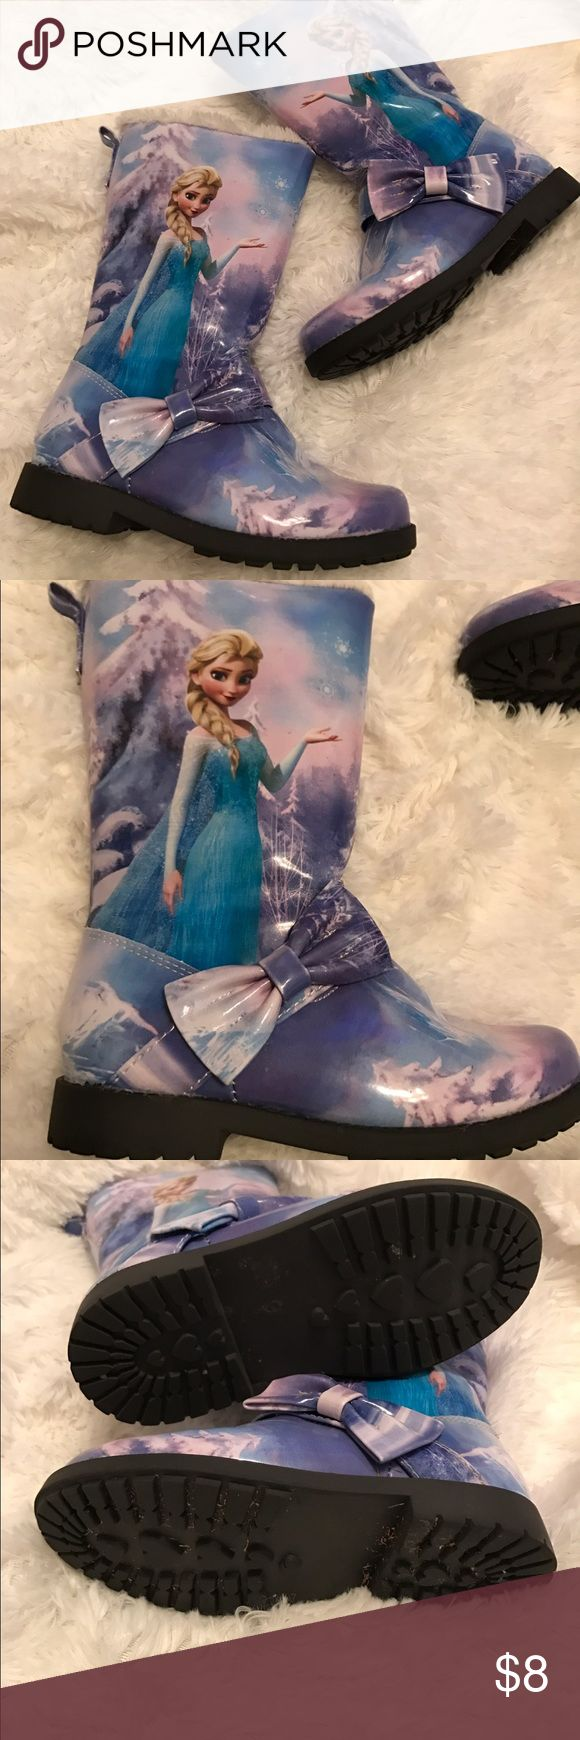 Disney Frozen boots These boots have a great picture of Elsa on the side. Only worn a couple times. Shoes Boots